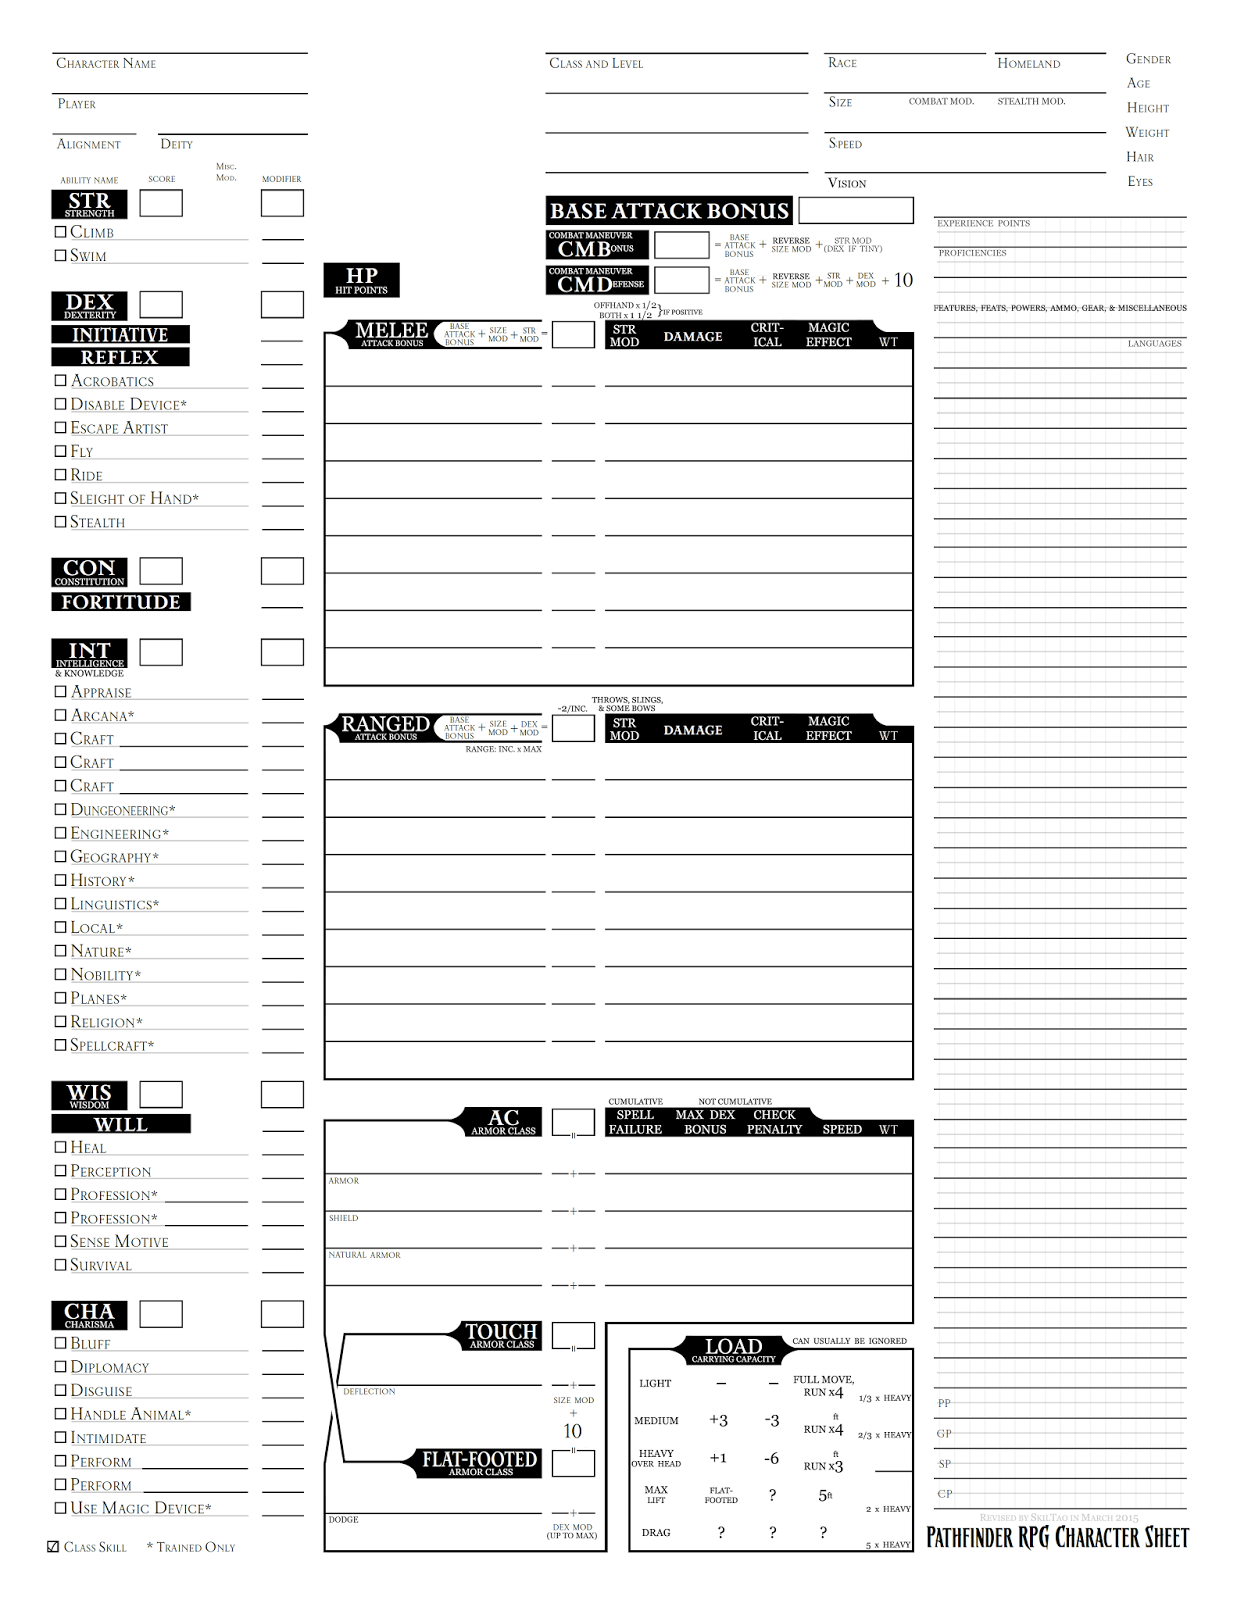 pathfinder character sheet printable skiltao 39 s gaming pathfinder character sheet revised 23913 | pathfinder%2Bcharacter%2Bsheet%2B(skiltao%2Brevision)